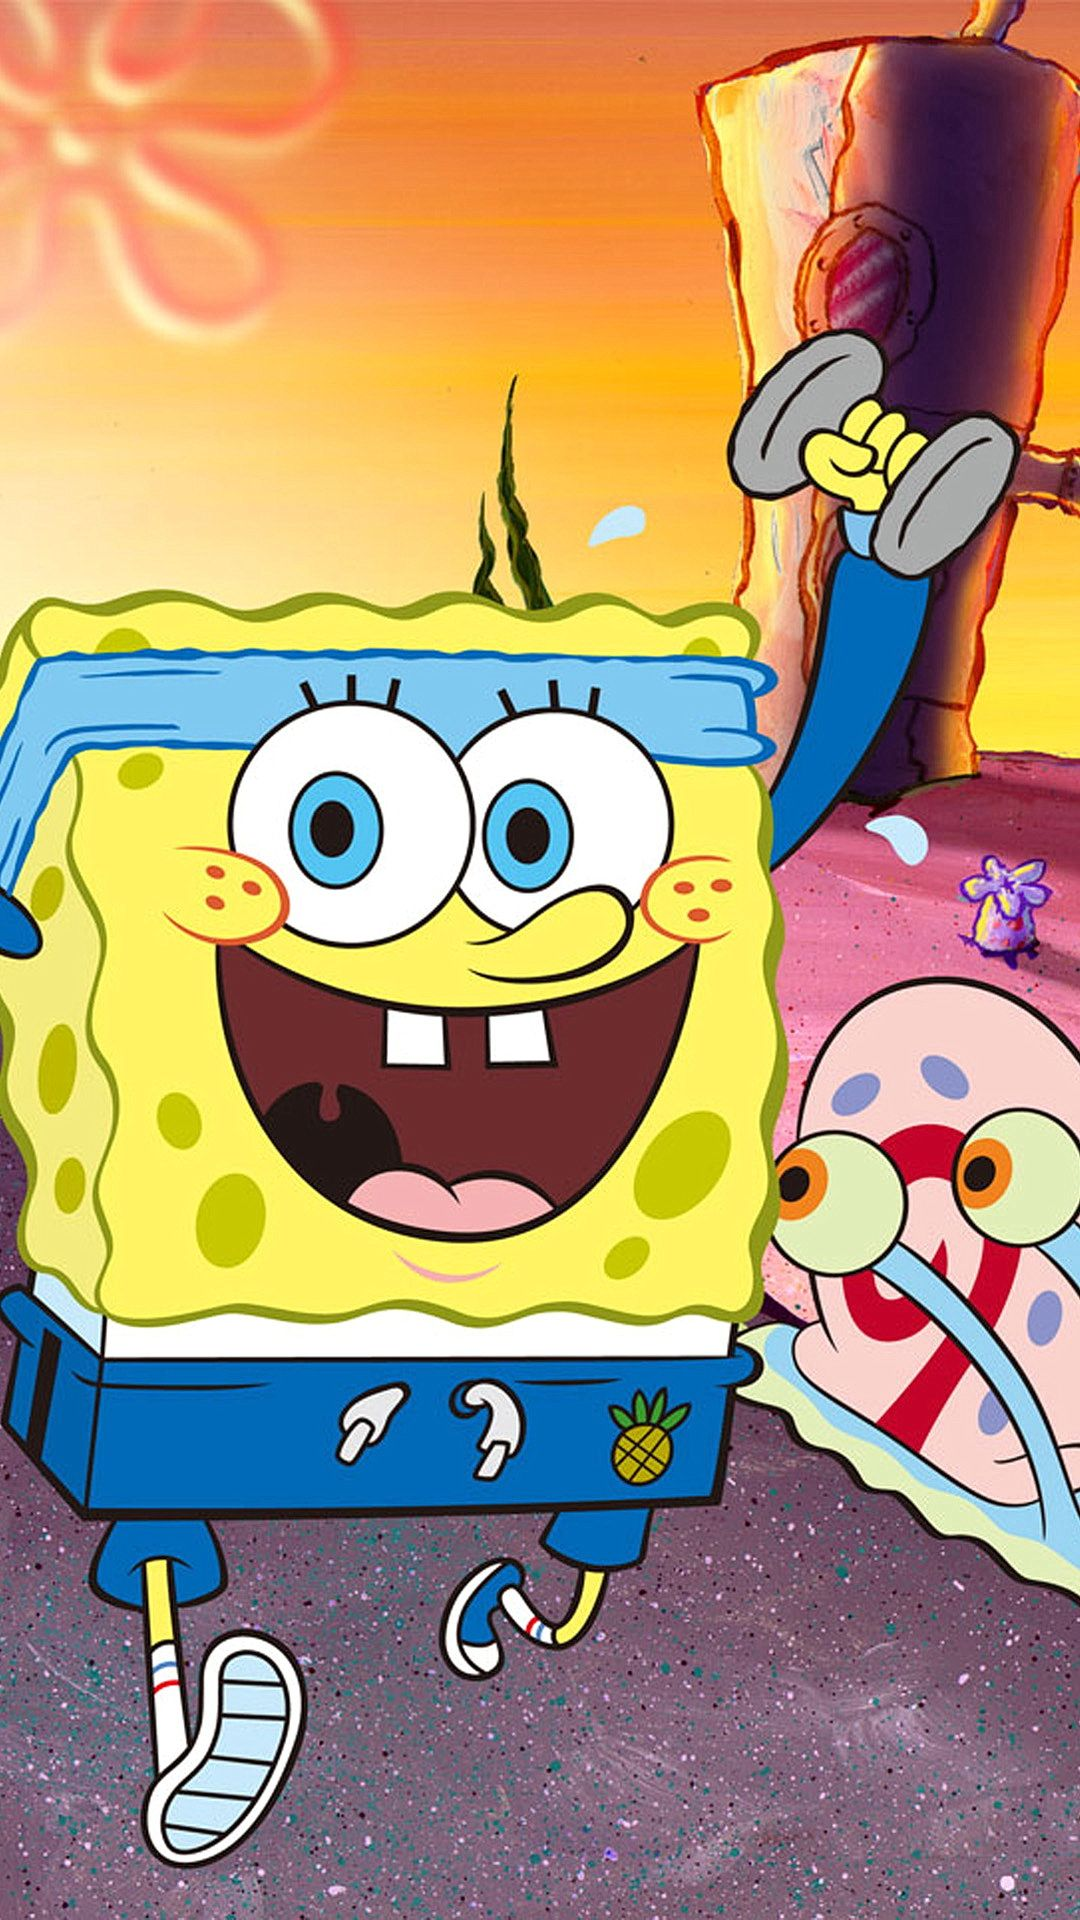 Sponge Bob Tap to see more of the cutest cartoon collection